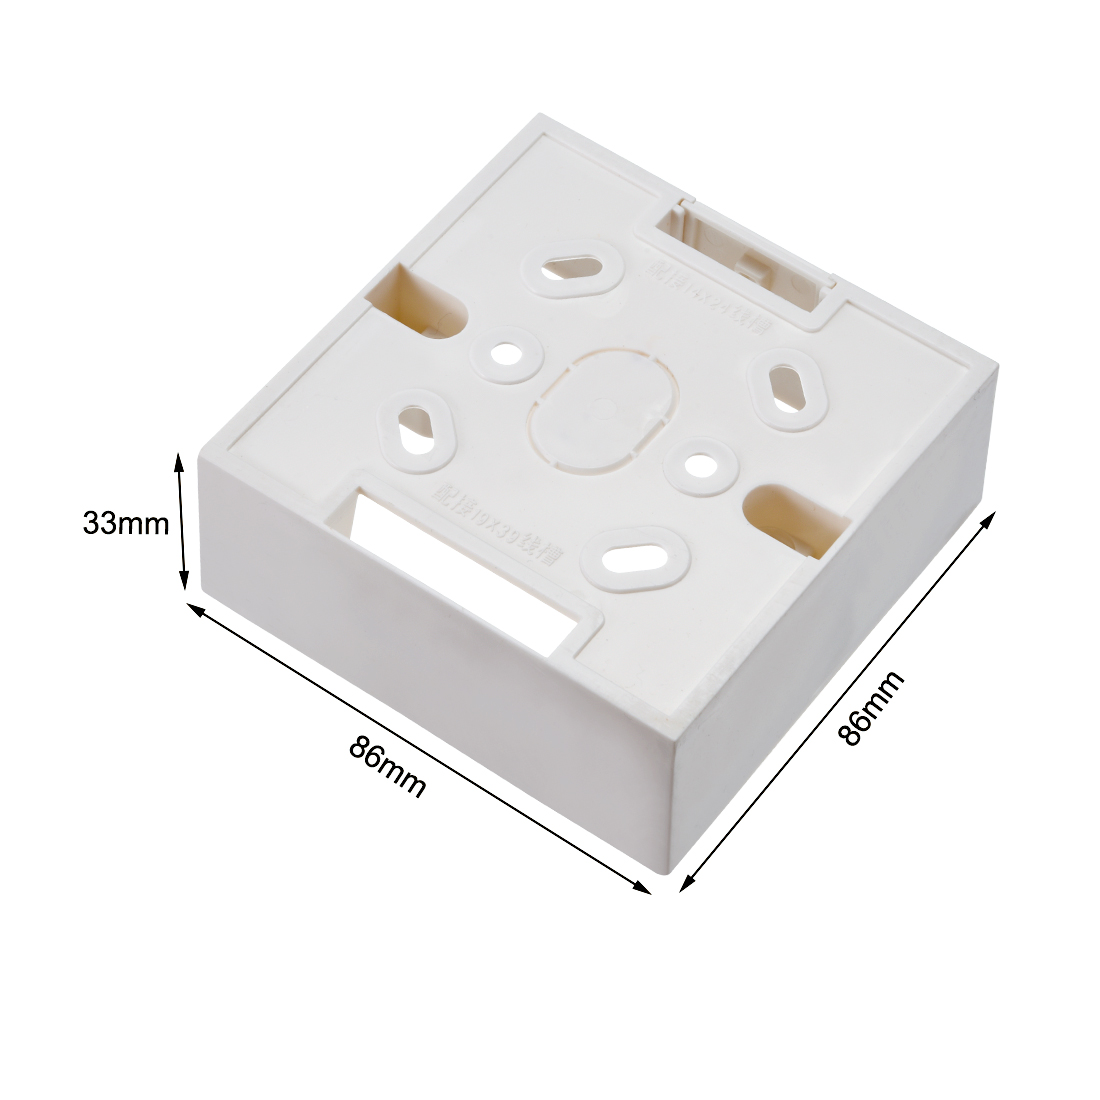 42 1pcs 87 uxcell/® Wall Switch Box Deep Case Recessed Mount 86 Type Single Gang White 87